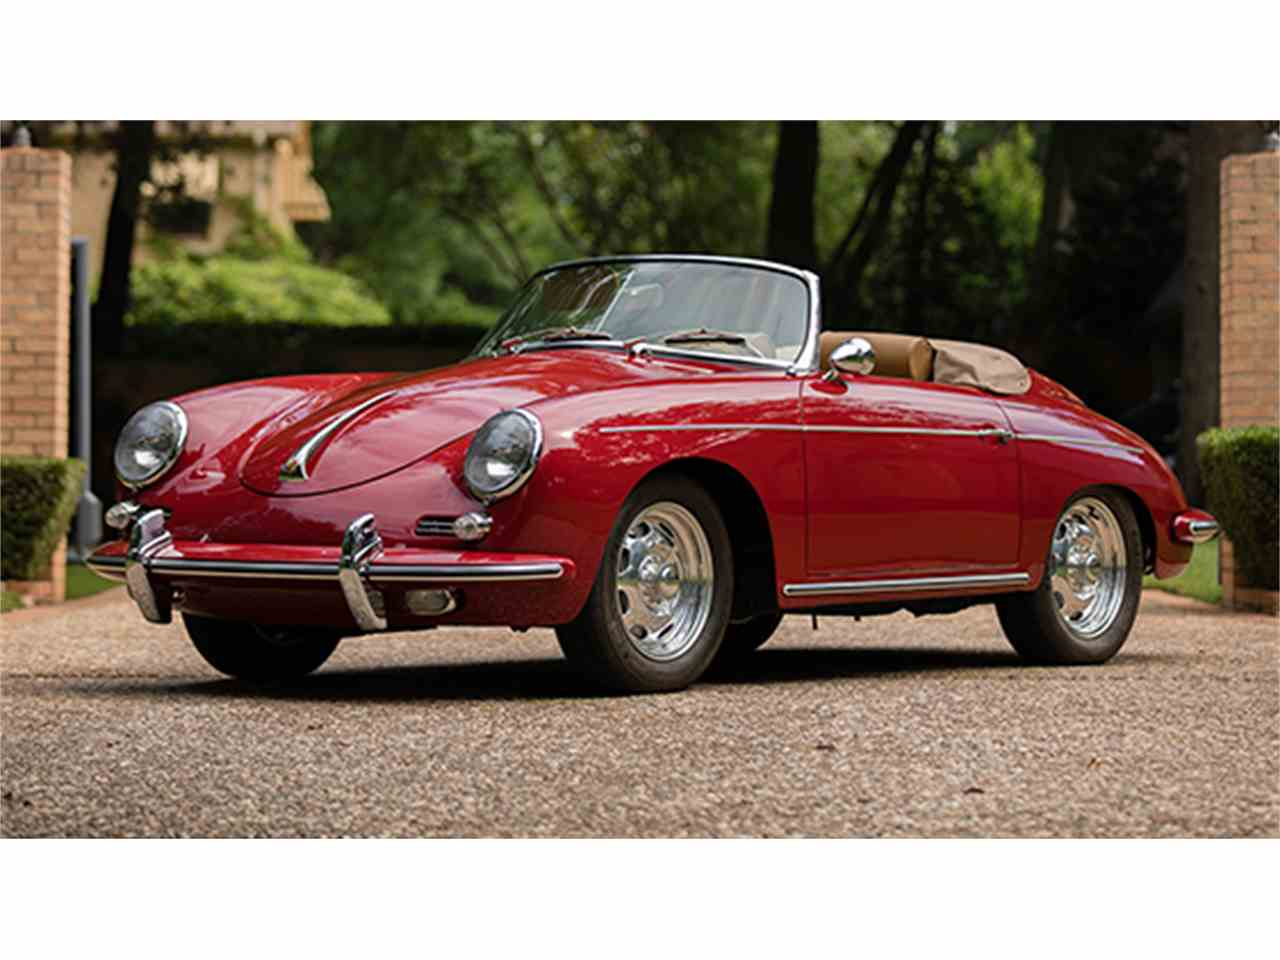 Large Picture Of 60 356 B 1600 Roadster By Drauz